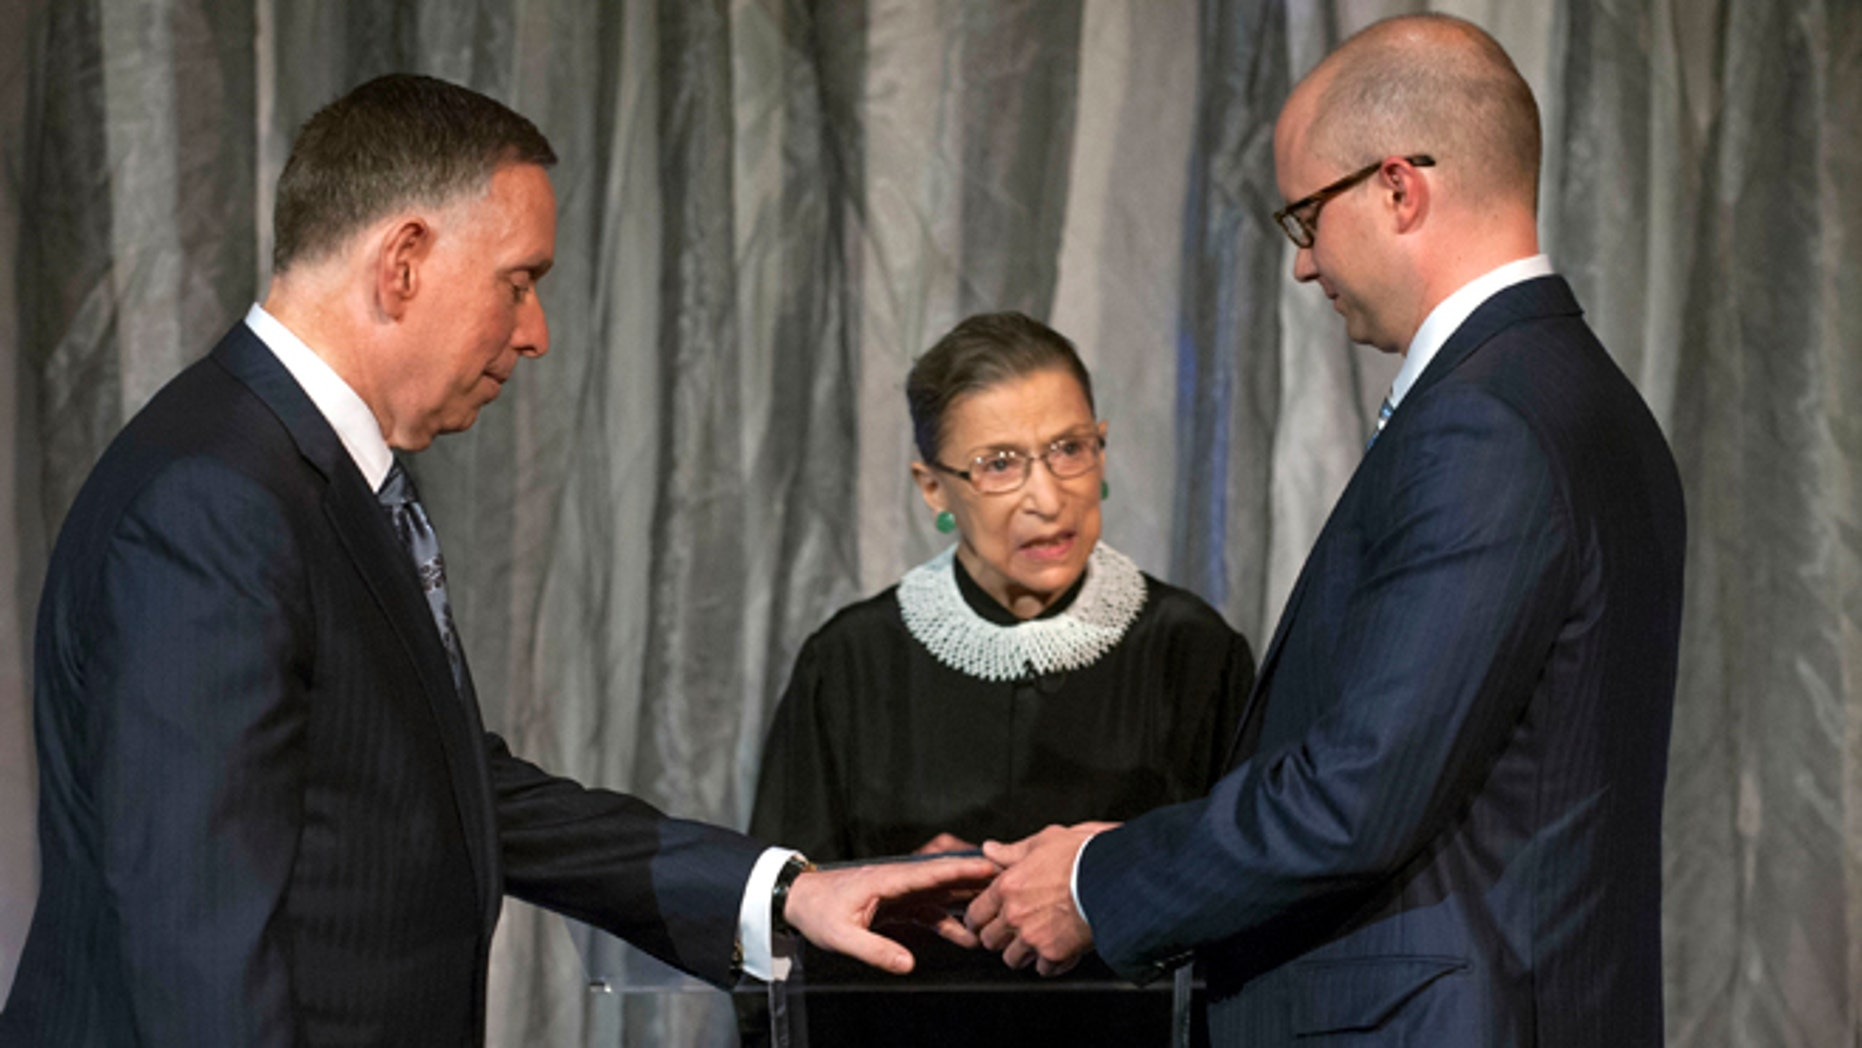 Aug. 31, 2013: This photo provided by The Kennedy Center shows Michael M. Kaiser, left, and John Roberts,  right, being married by Justice Ruth Bader Ginsburg, center,  at the Kennedy Center.